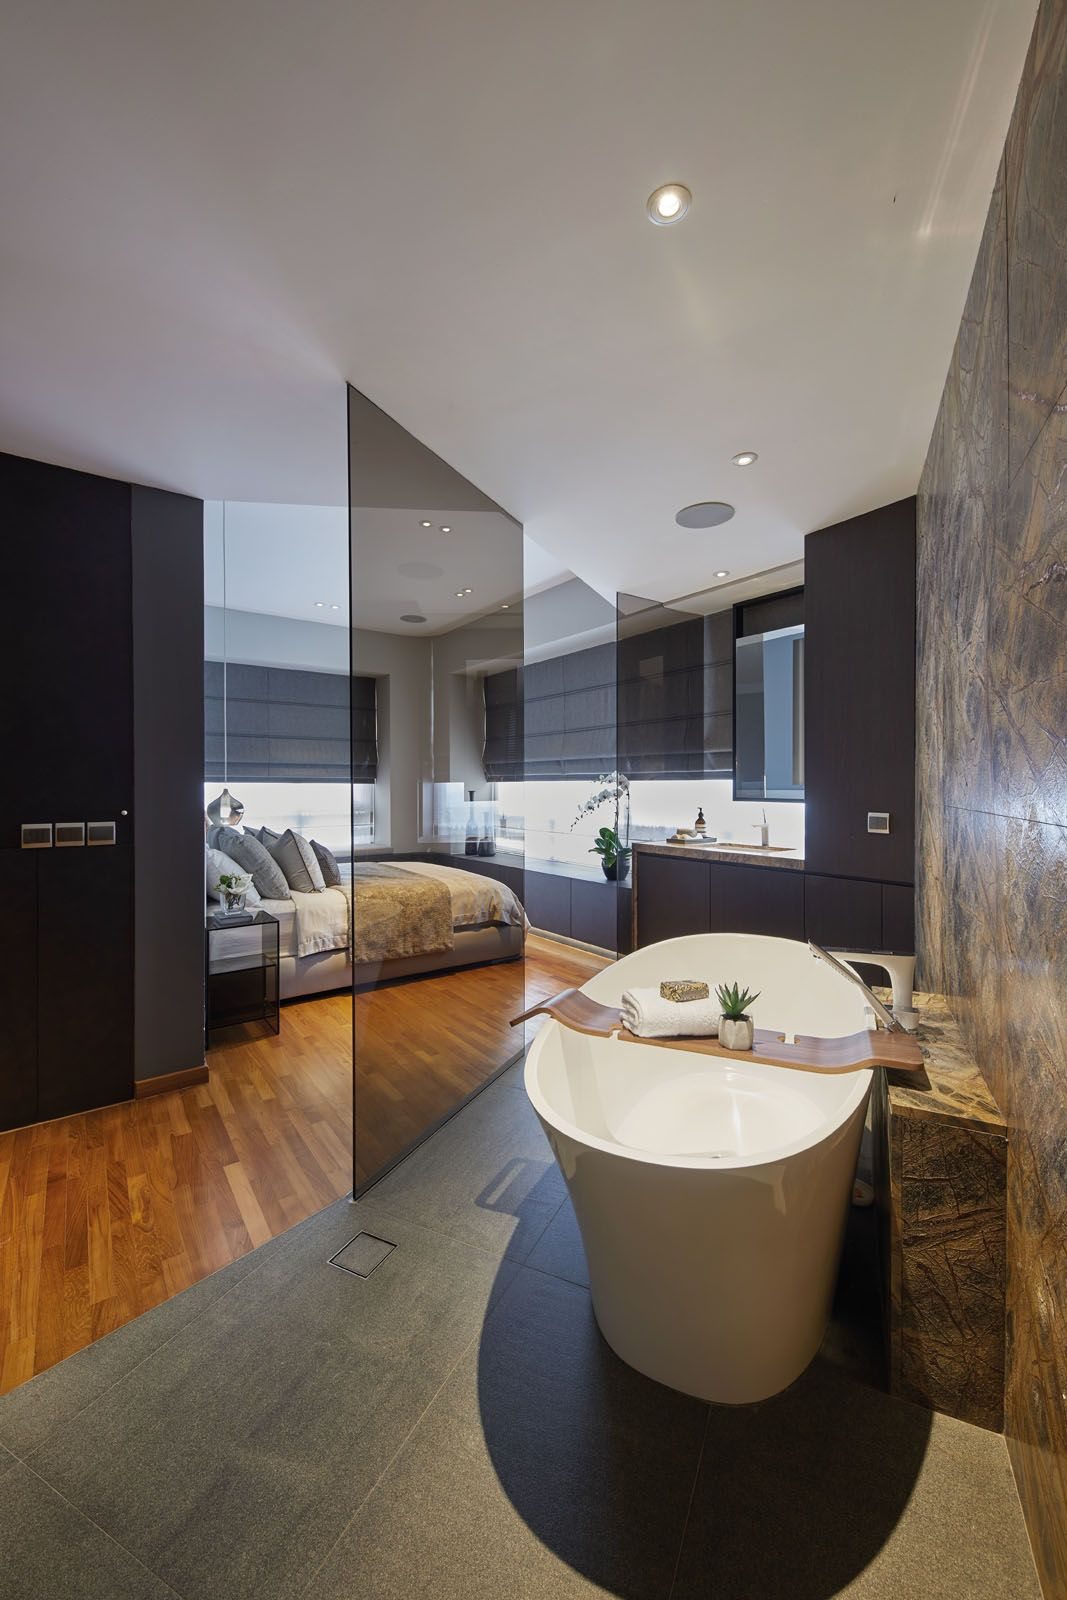 Tinted glass panels separate the bedroom area from the bathroom